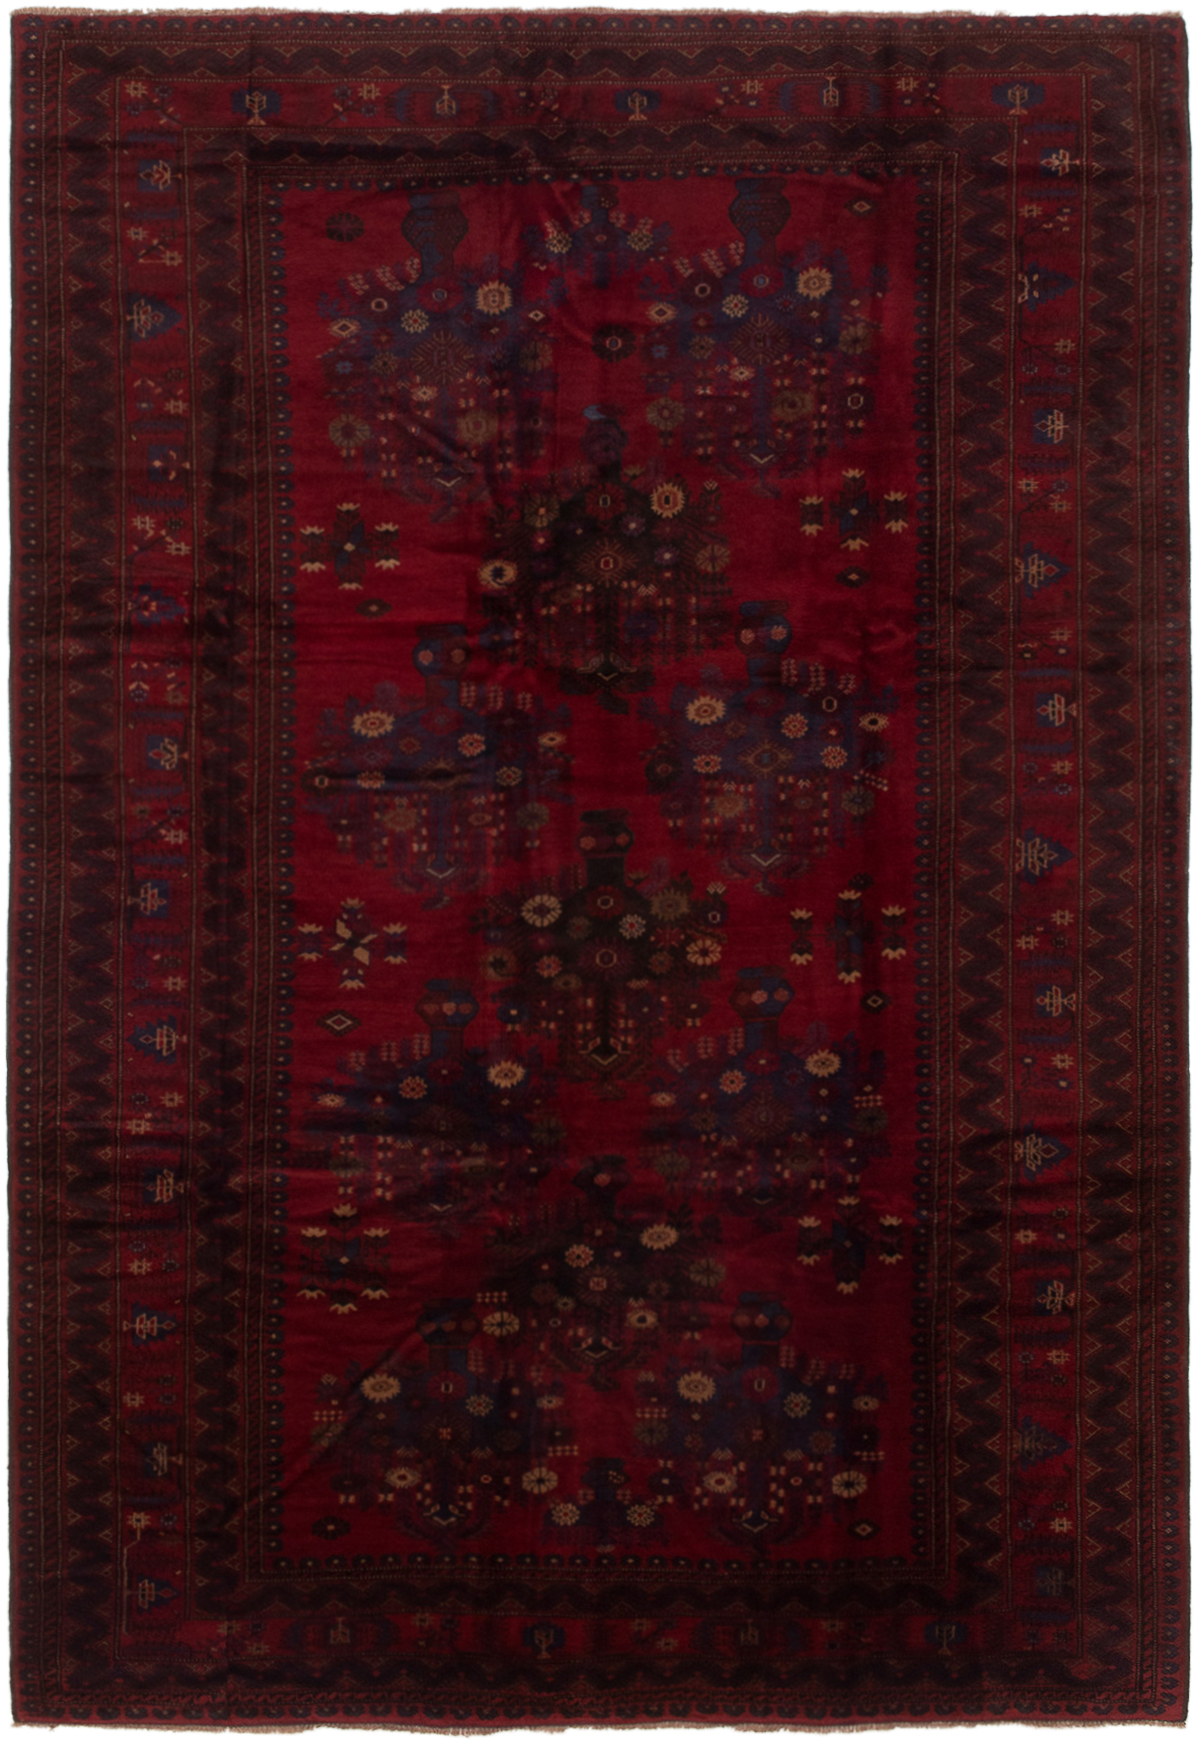 """Hand-knotted Finest Rizbaft Red Wool Rug 6'11"""" x 9'10""""  Size: 6'11"""" x 9'10"""""""